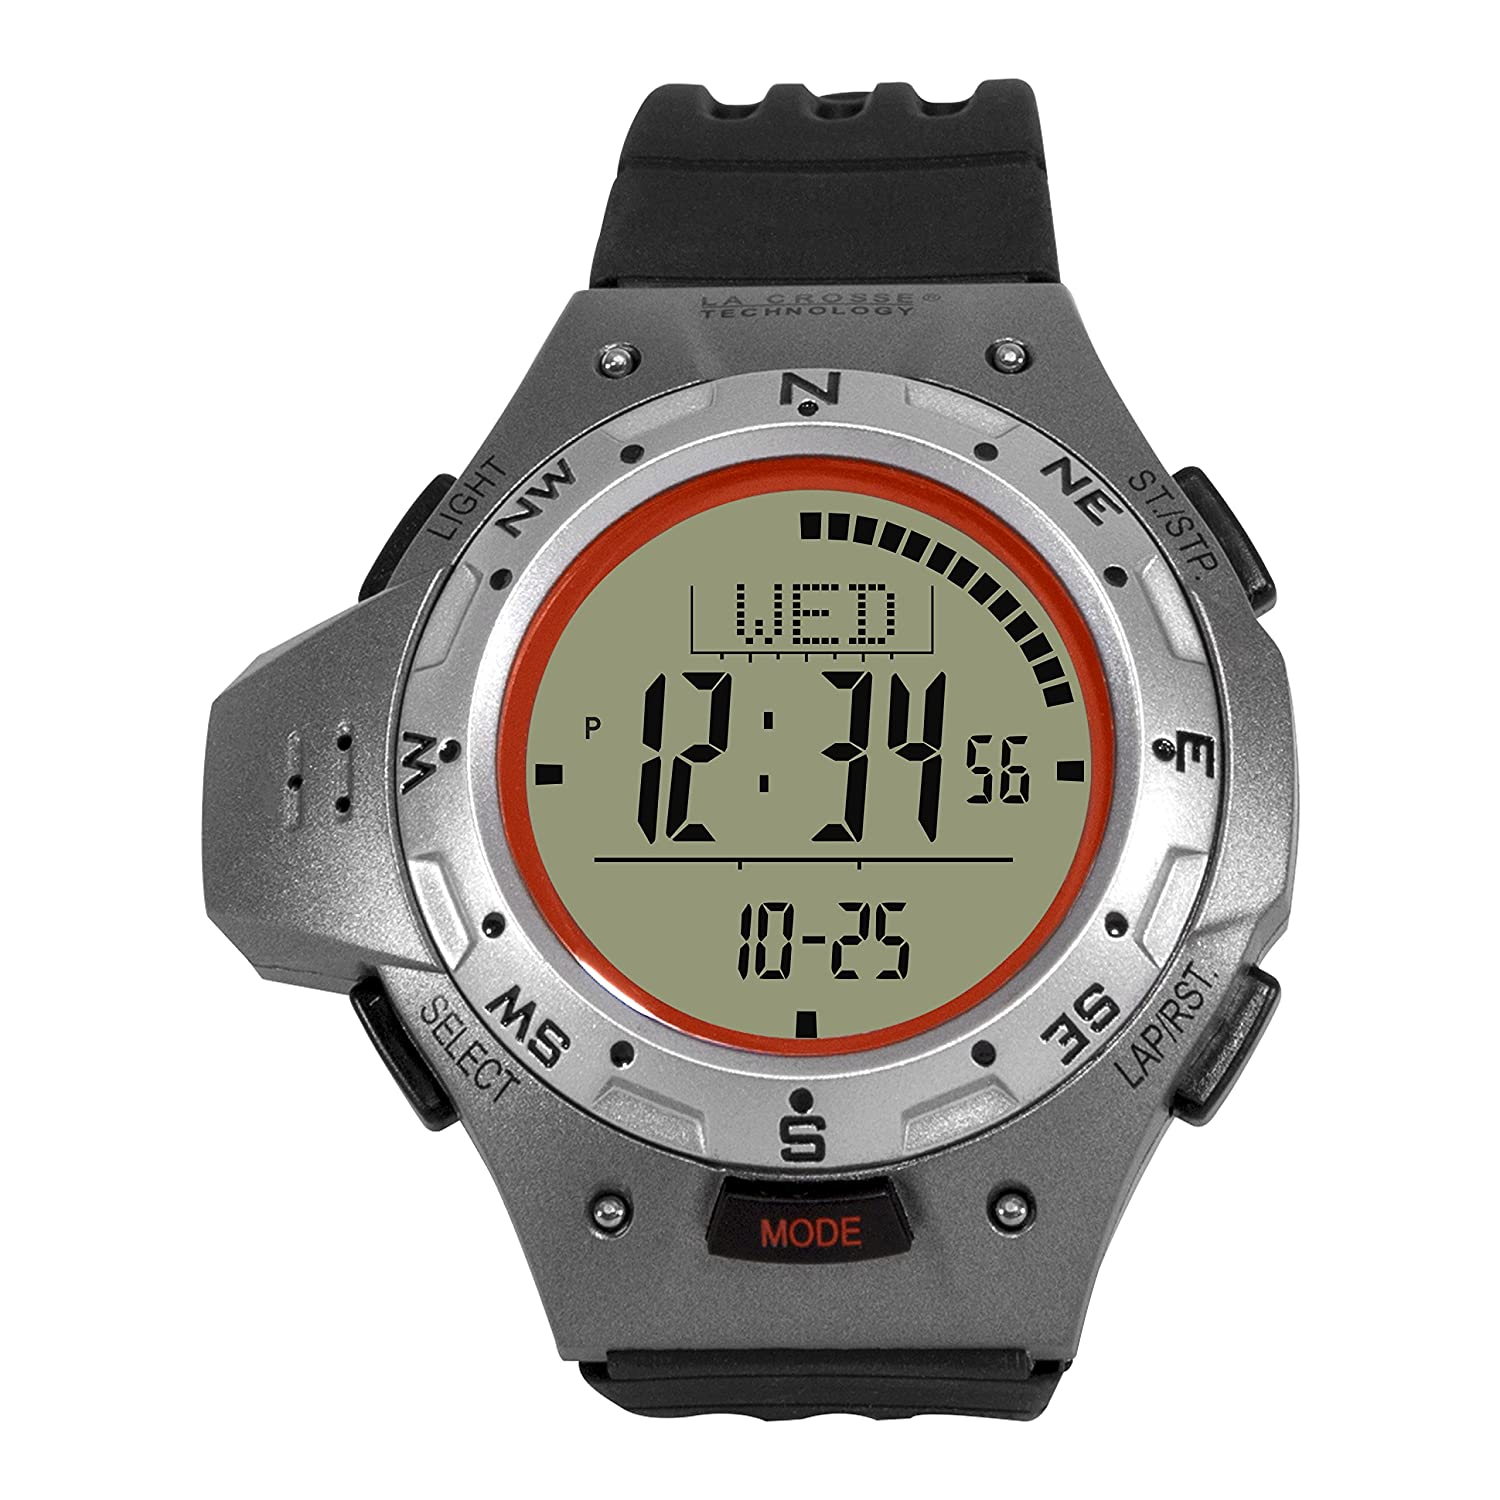 La Crosse Technology XG-55 Digital Watch